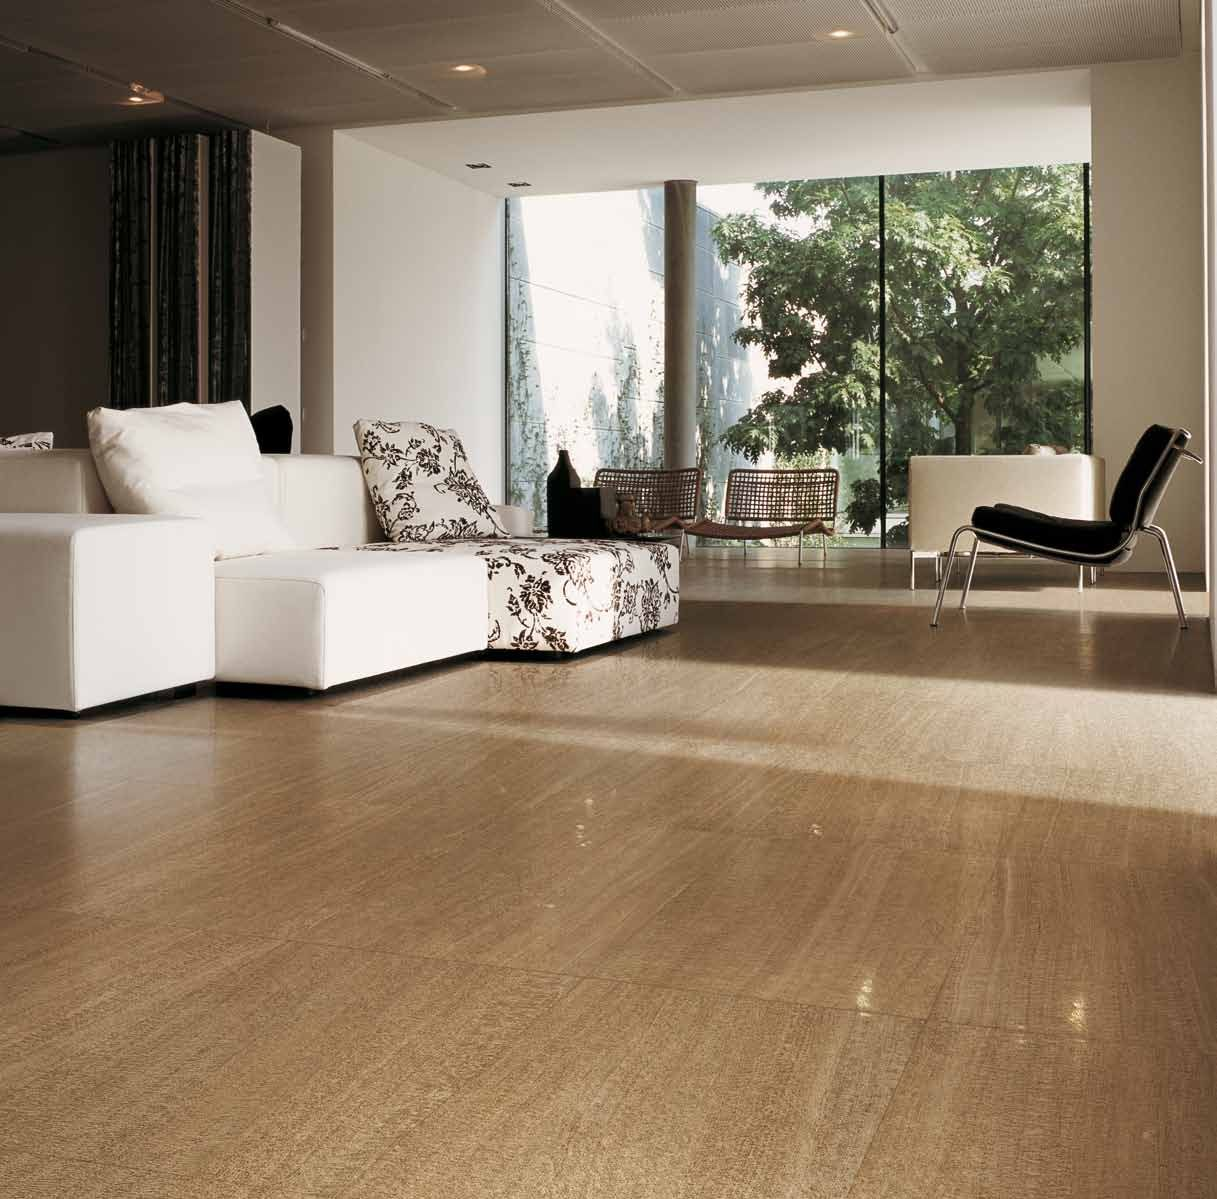 Provenza q stone walnut polished 30x60 cm 63396p porcelain kitchens dailygadgetfo Image collections